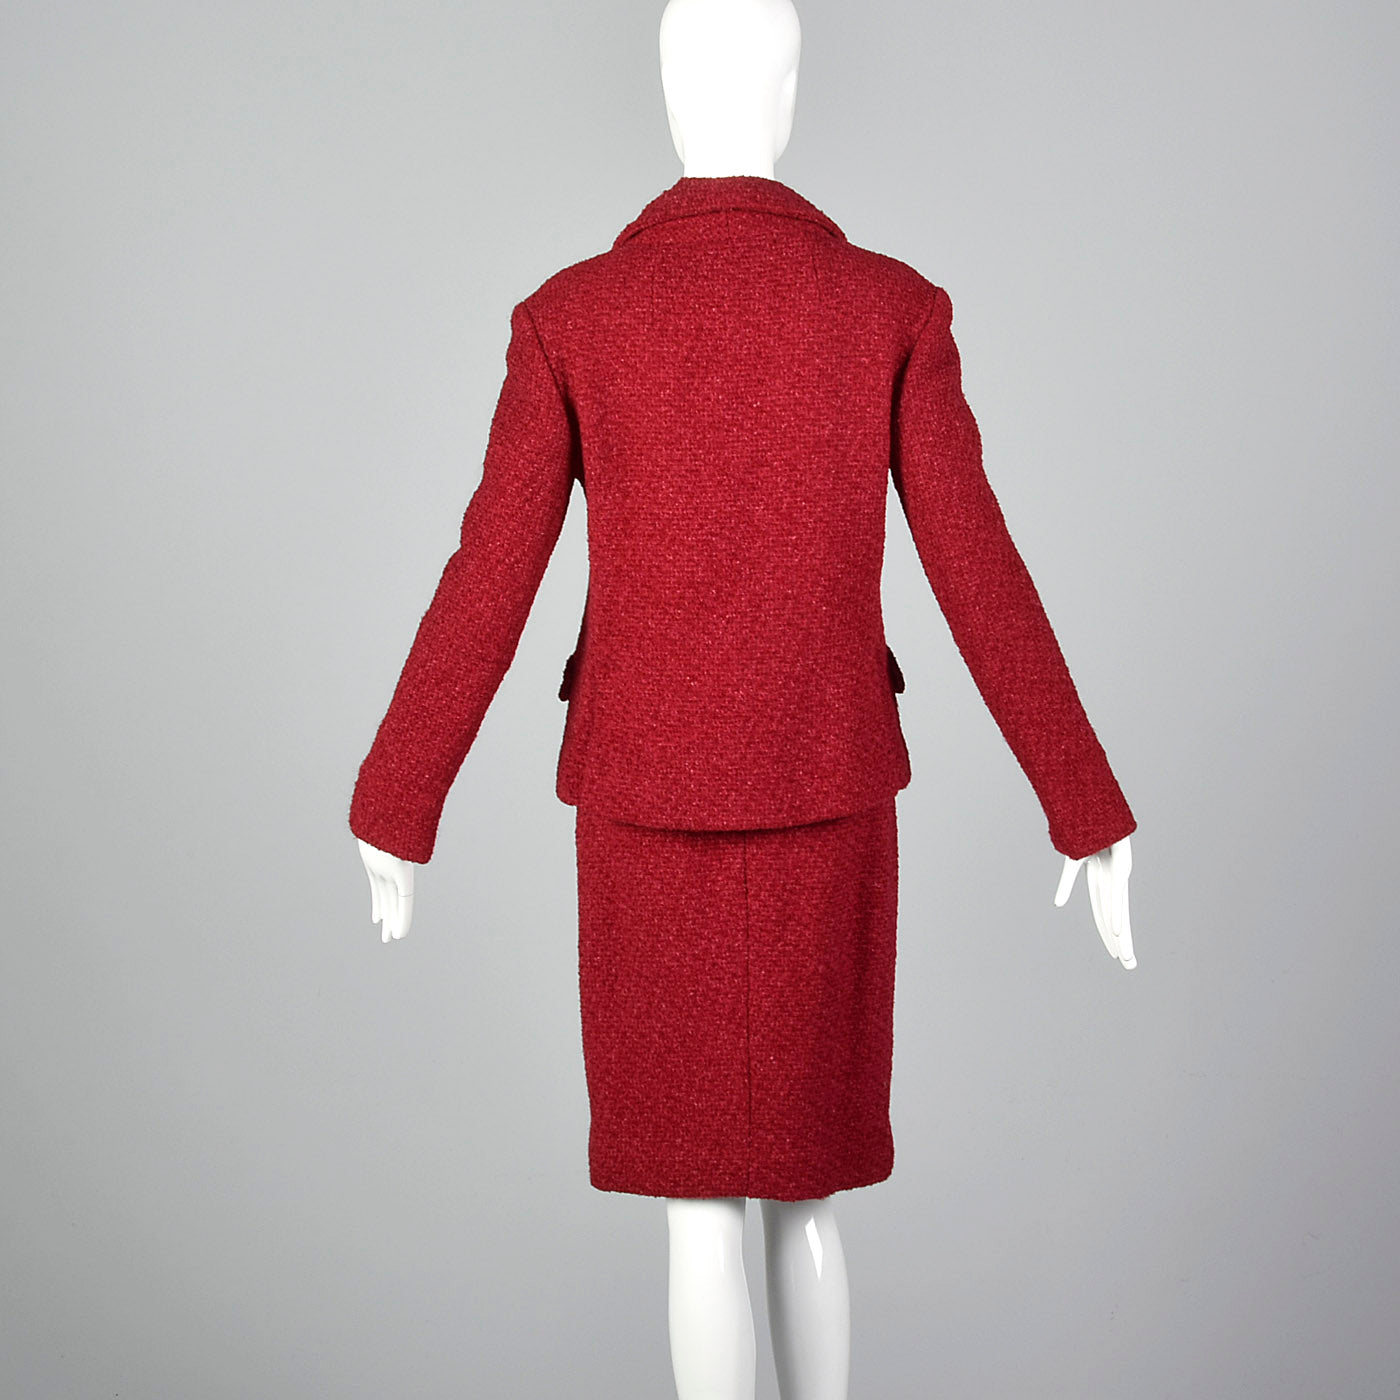 1960s Red Boucle Wool Skirt Suit